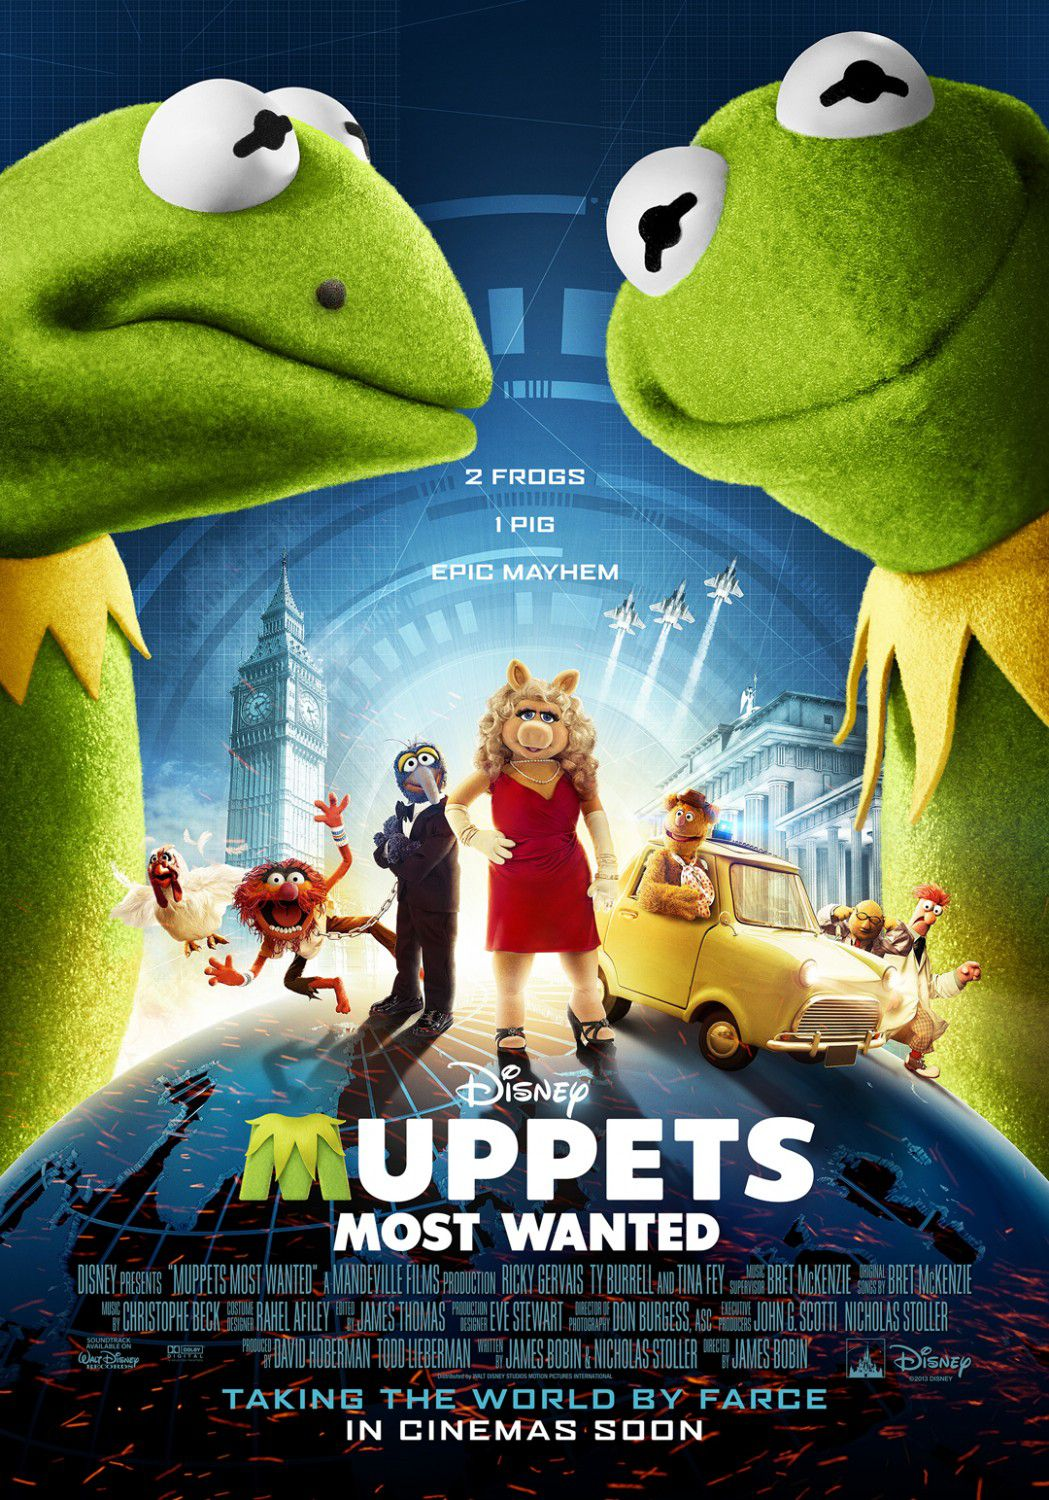 Muppets Most Wanted (2014) - Kermit poster